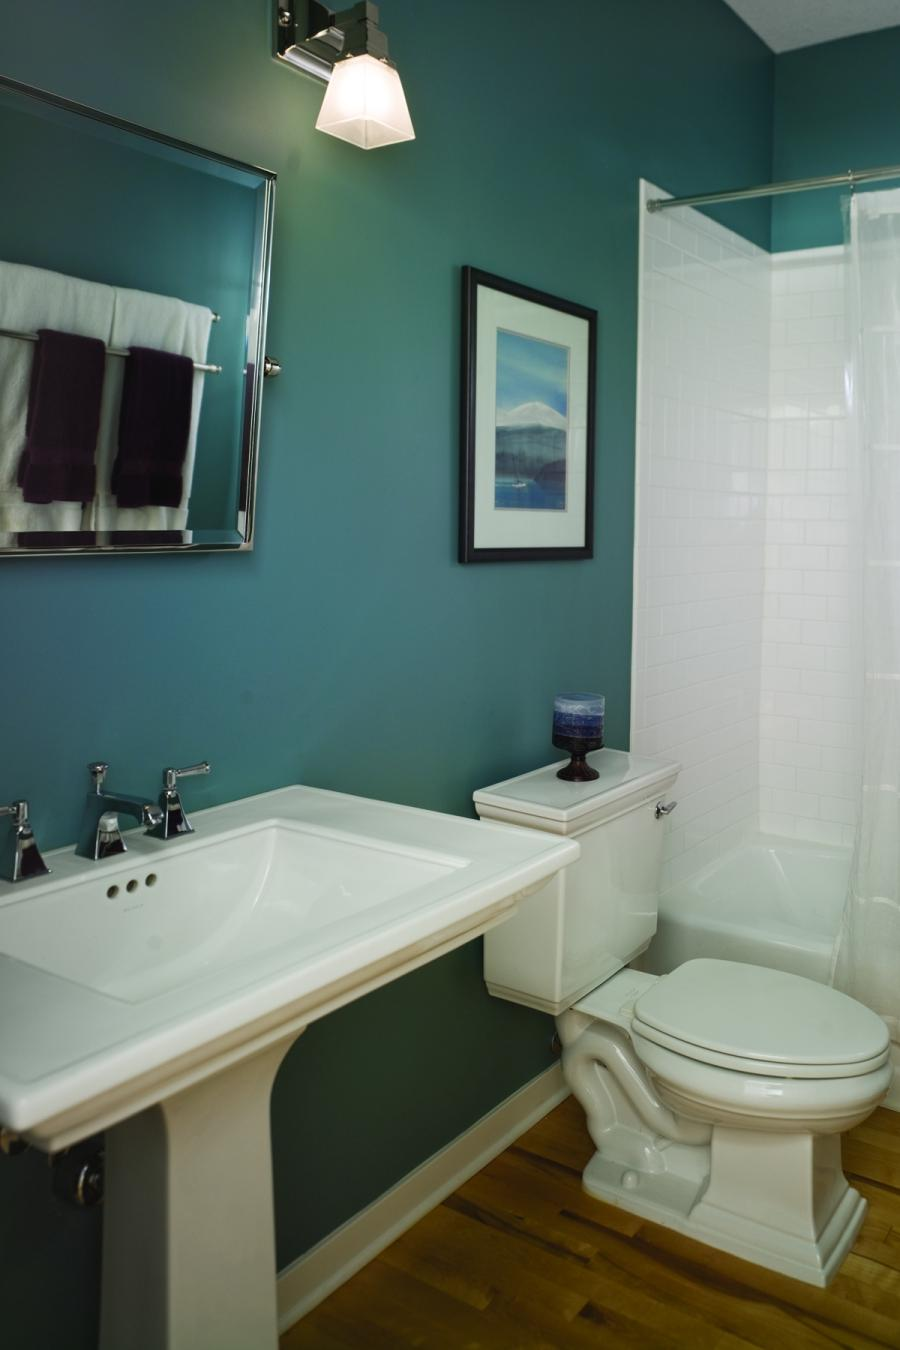 Small bathroom design photos low budget for Bathroom designs low budget